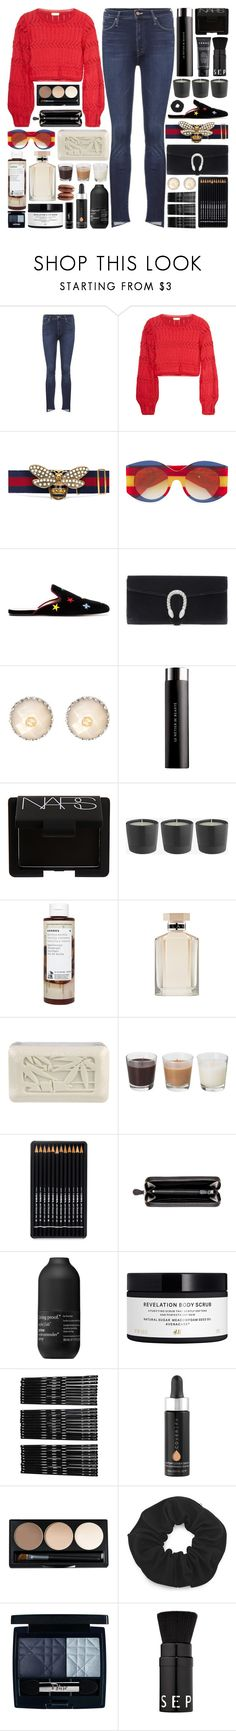 """""""My heart has never felt this way before. I'm looking through your eyes."""" by pure-and-valuable ❤ liked on Polyvore featuring Mother, Gucci, Le Métier de Beauté, NARS Cosmetics, Korres, STELLA McCARTNEY, Archipelago Botanicals, Bottega Veneta, Living Proof and H&M"""